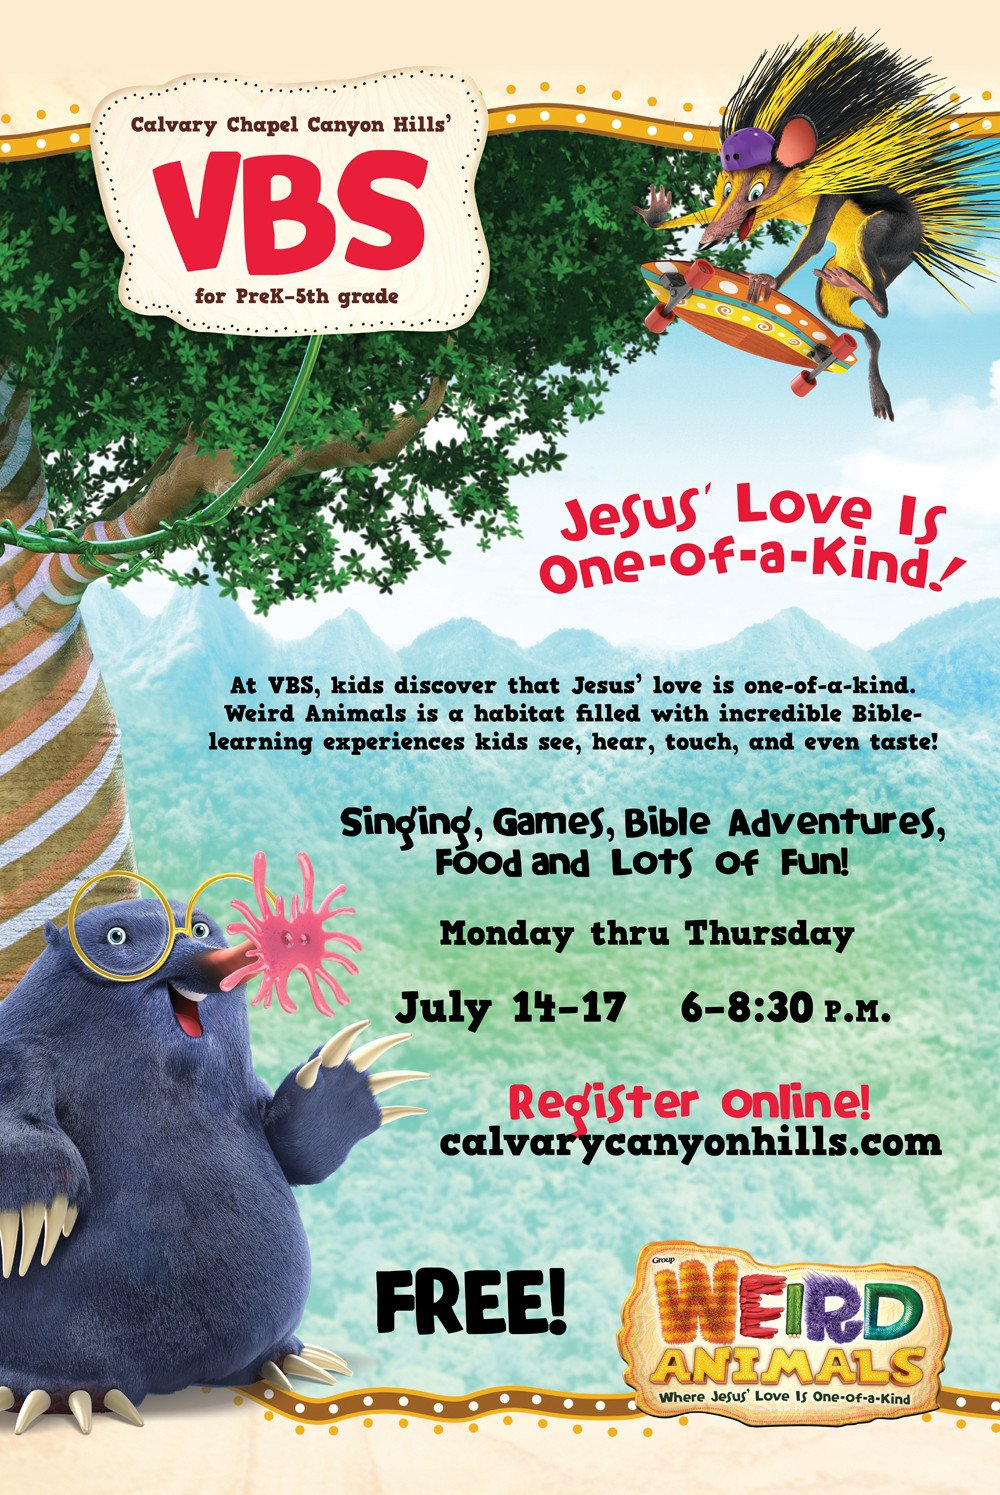 Vbs Flyer Template Vacation Bible School Summer 2014 at Calvary Chapel